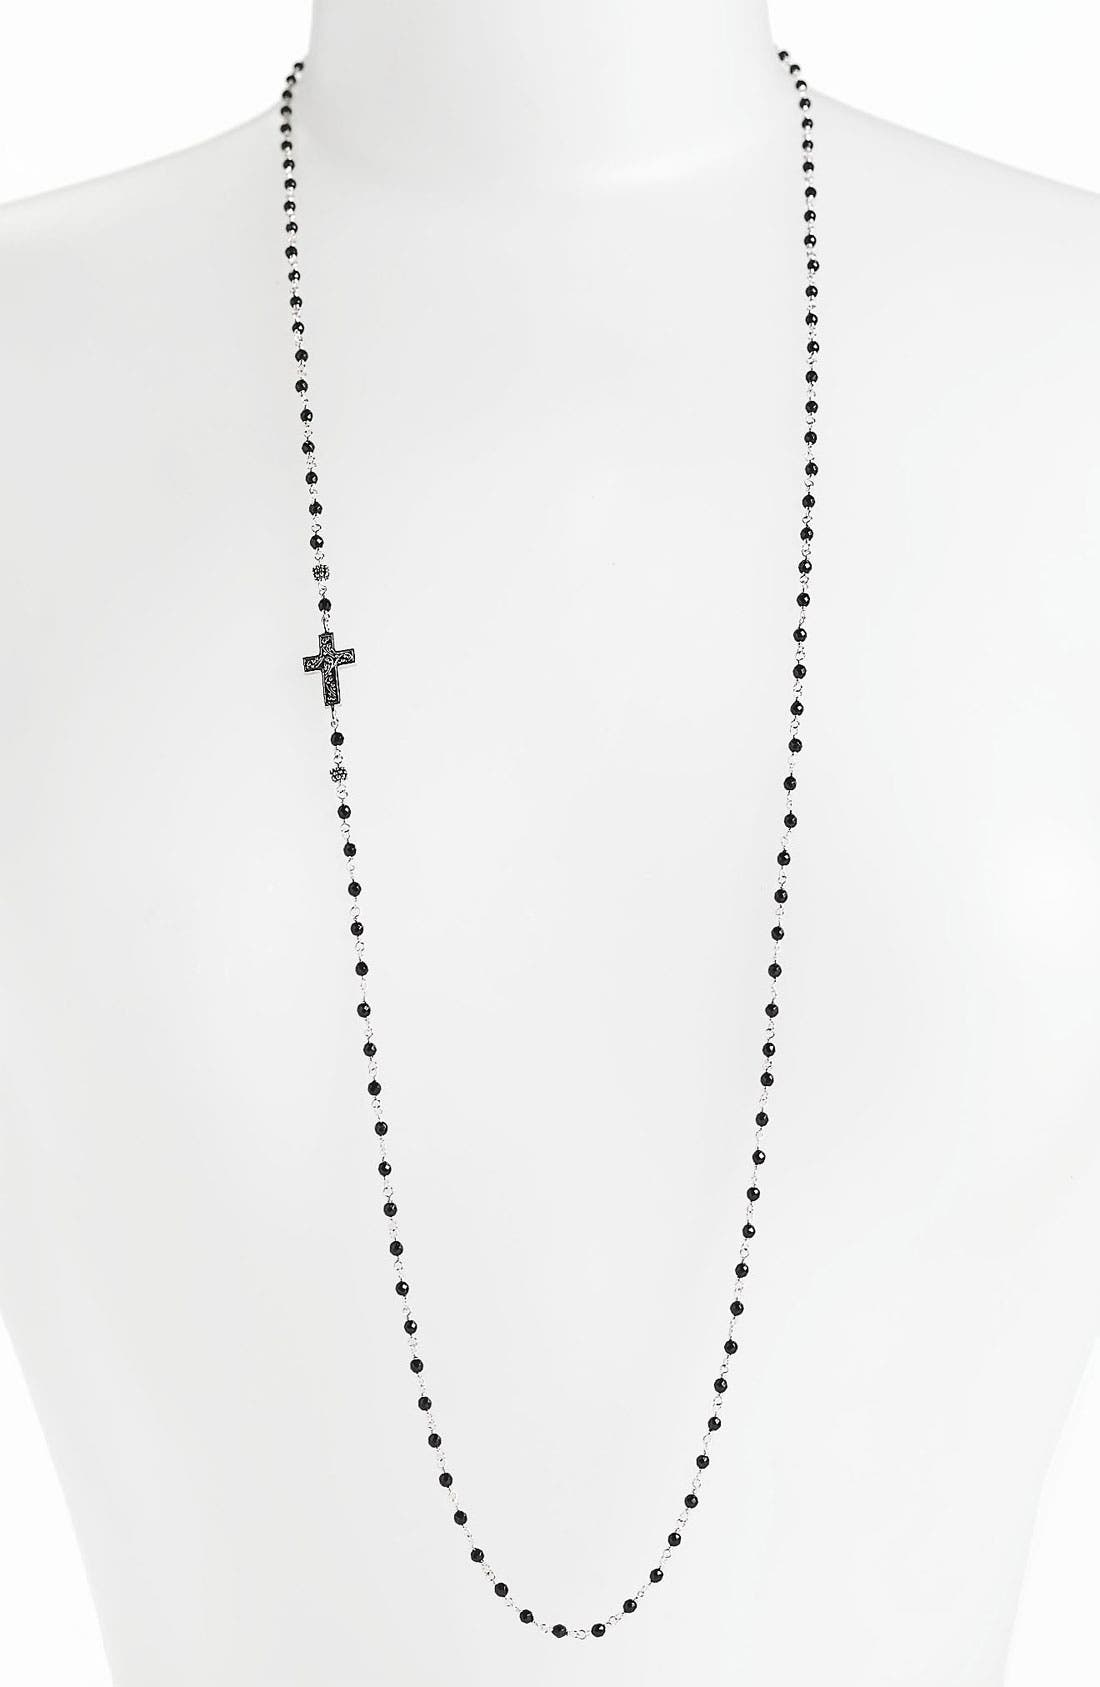 Main Image - Lois Hill Long Station Necklace